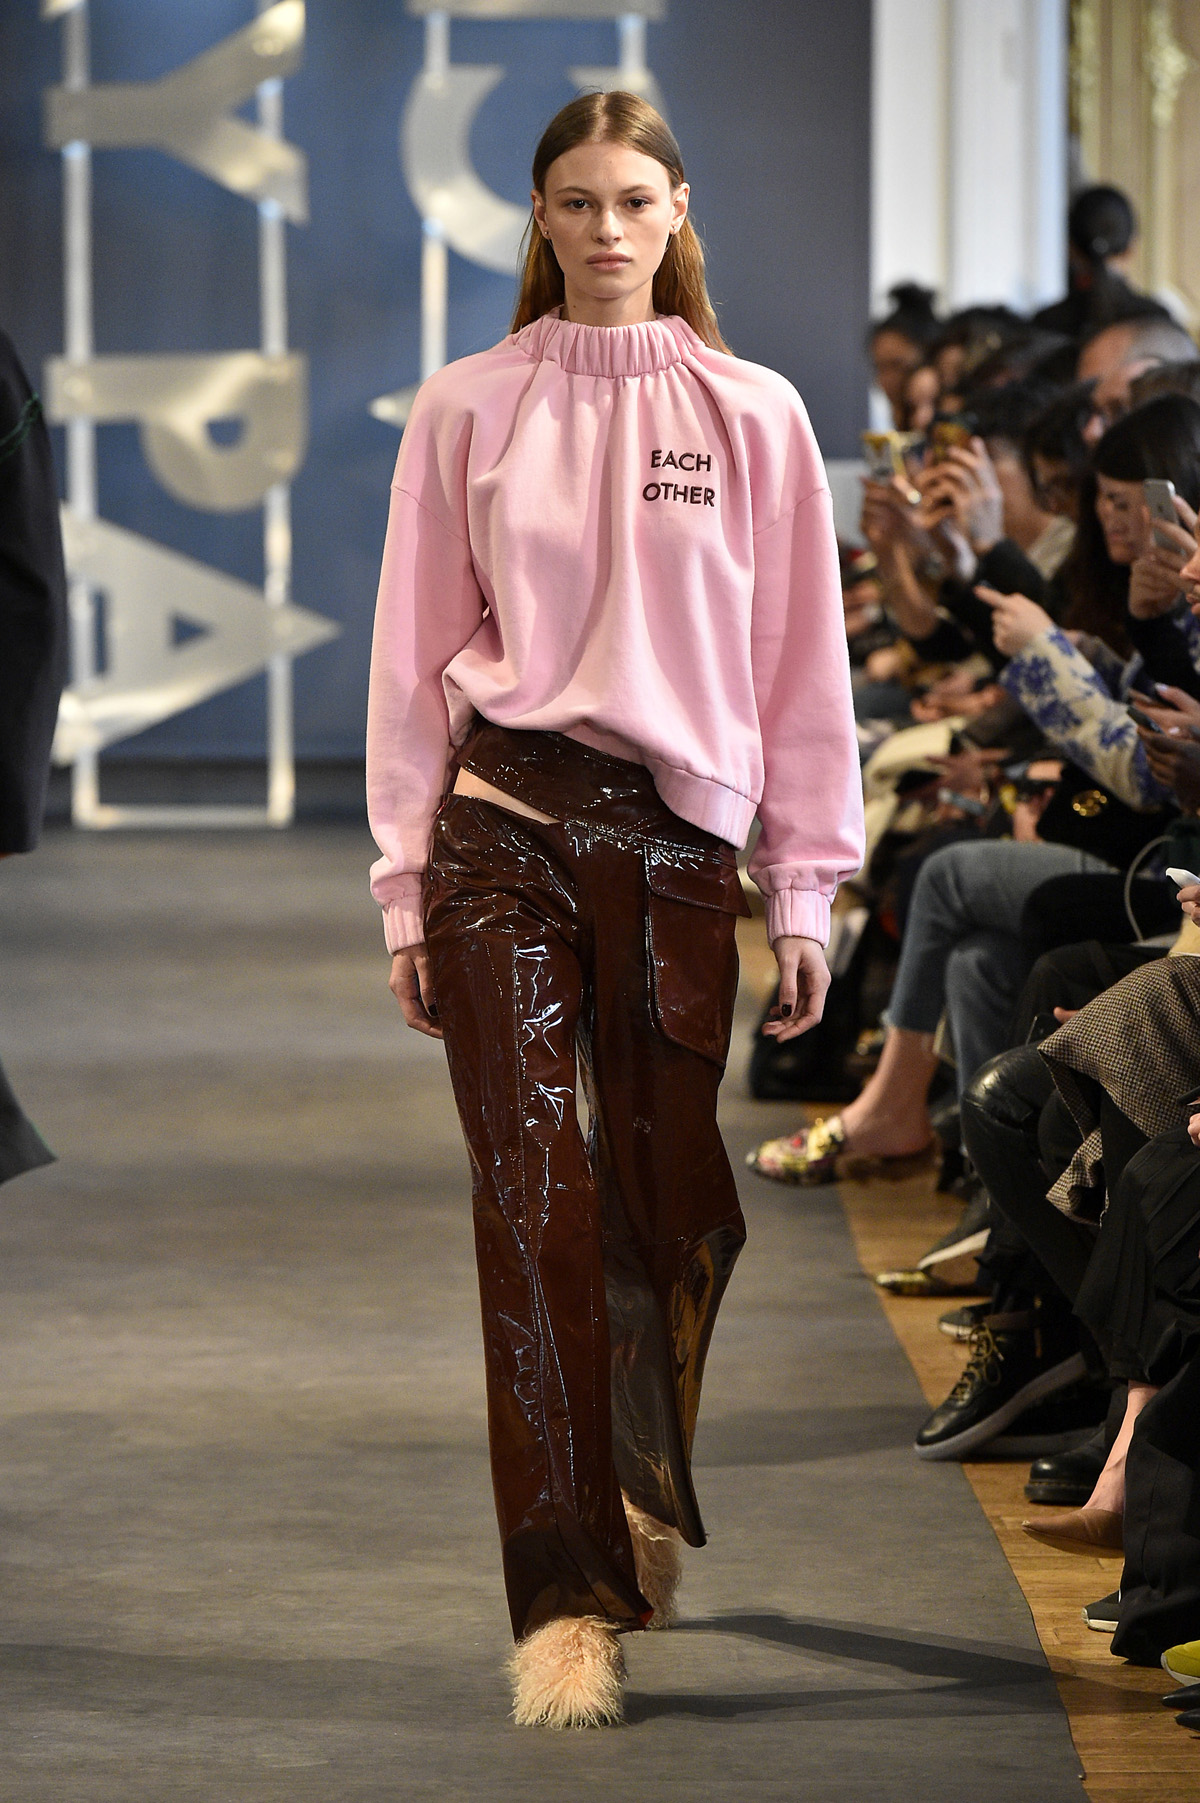 Each x Other: Runway - Paris Fashion Week Womenswear Fall/Winter 2017/2018